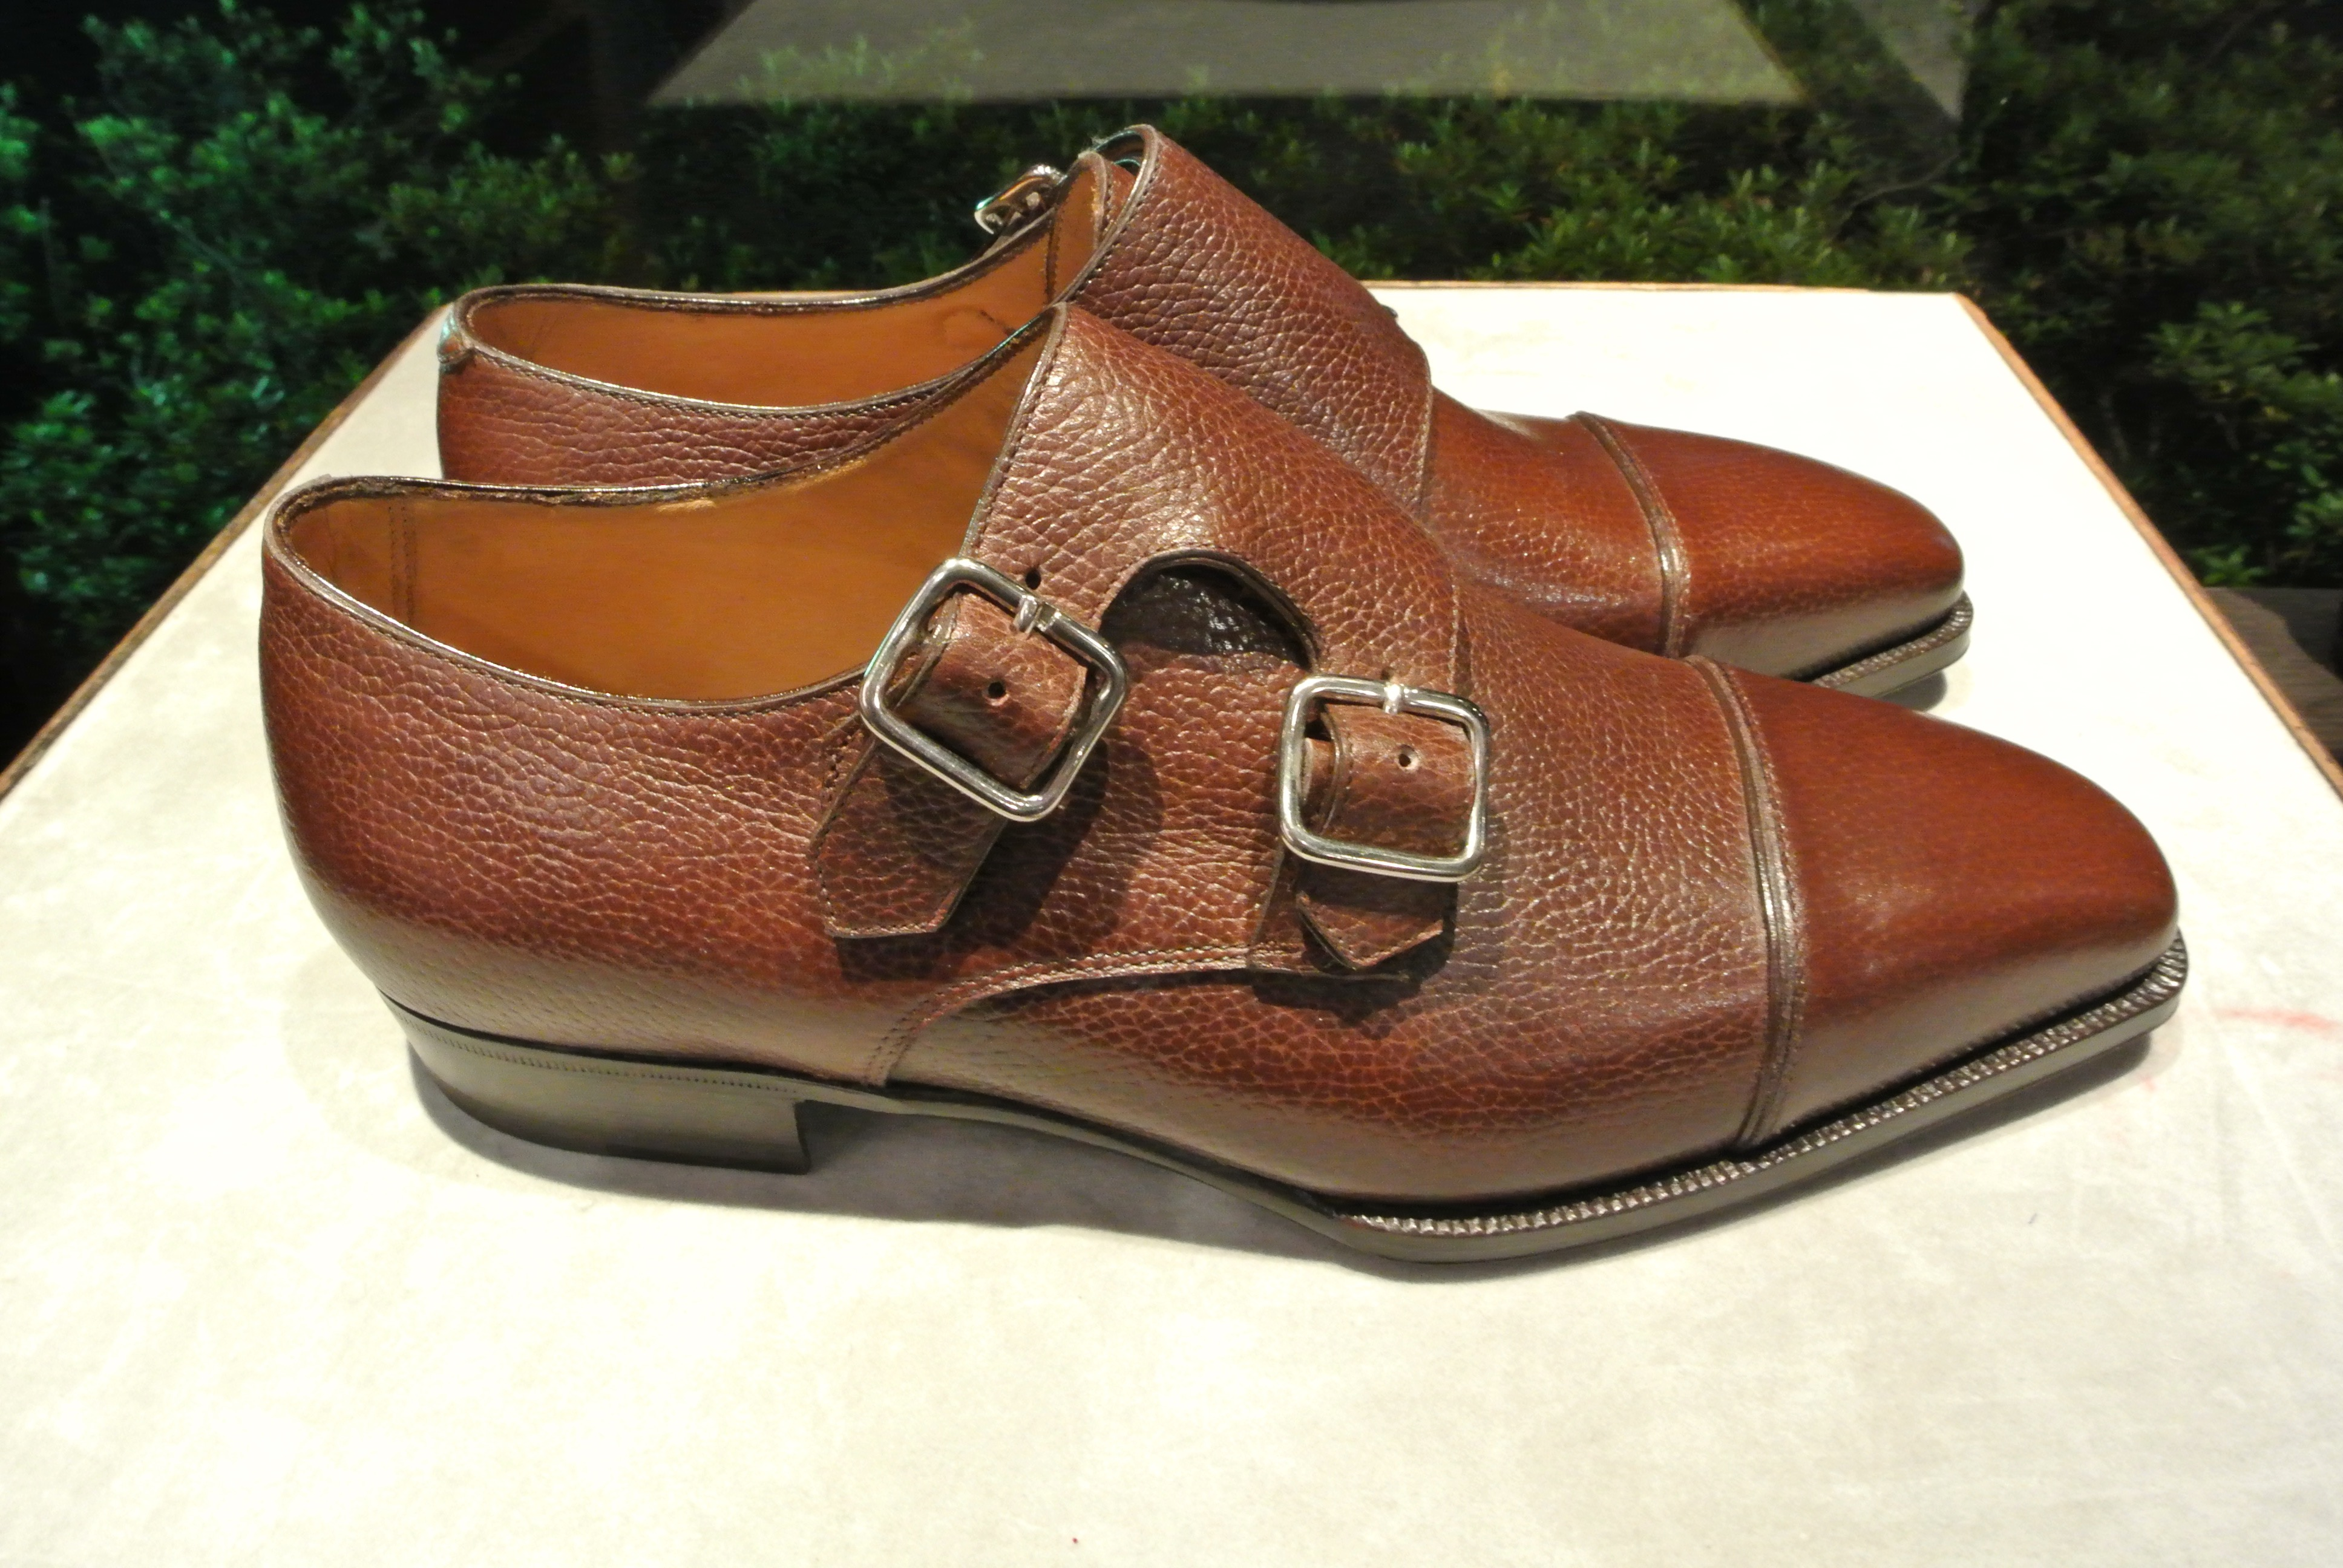 Handmade Shoes from Italy – Enzo Bonafè